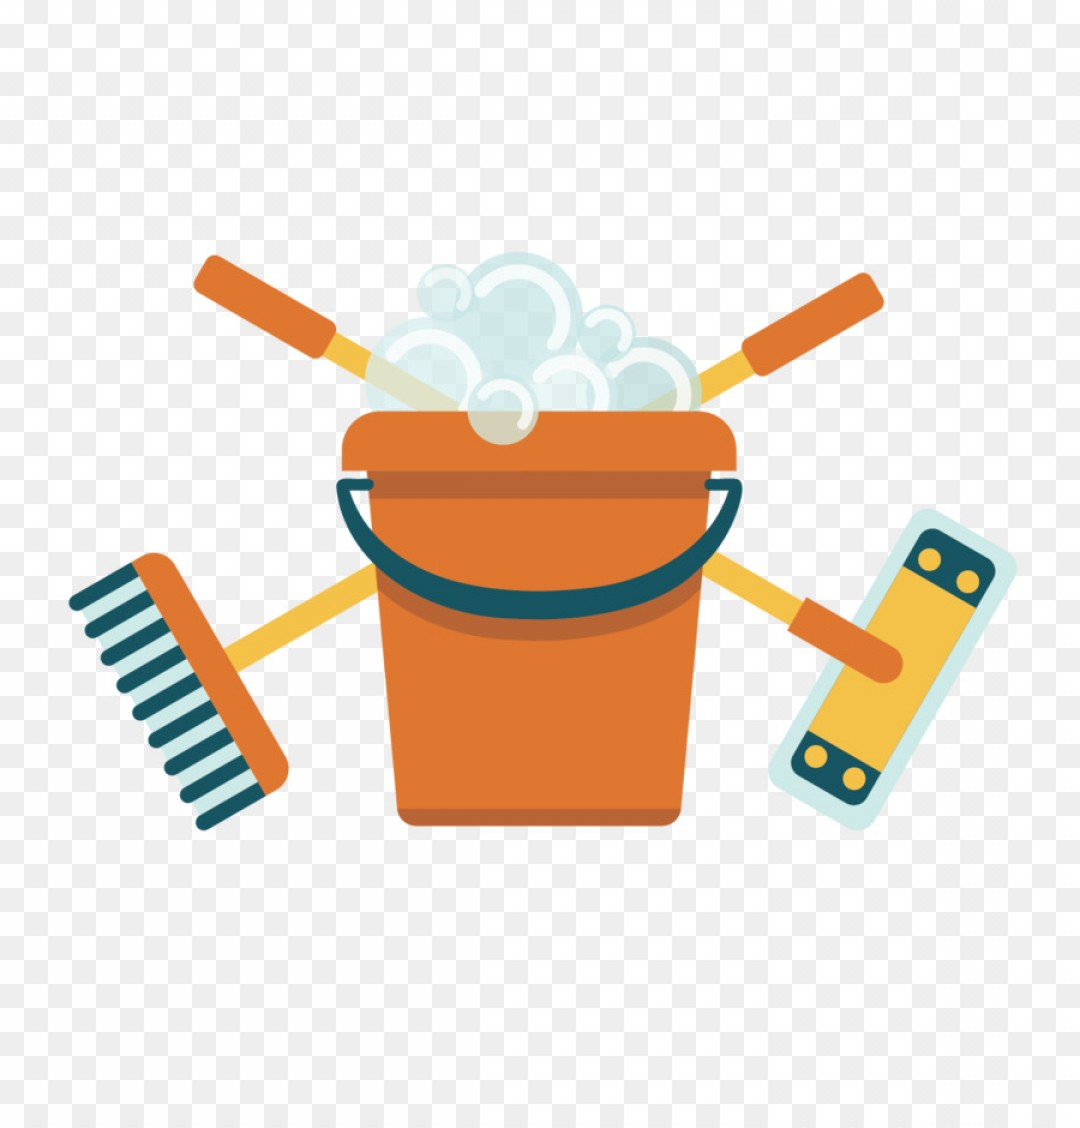 Mop And Bucket Clip Art Vector: Png Broom Mop Bucket Vector Broom Mop Bucket